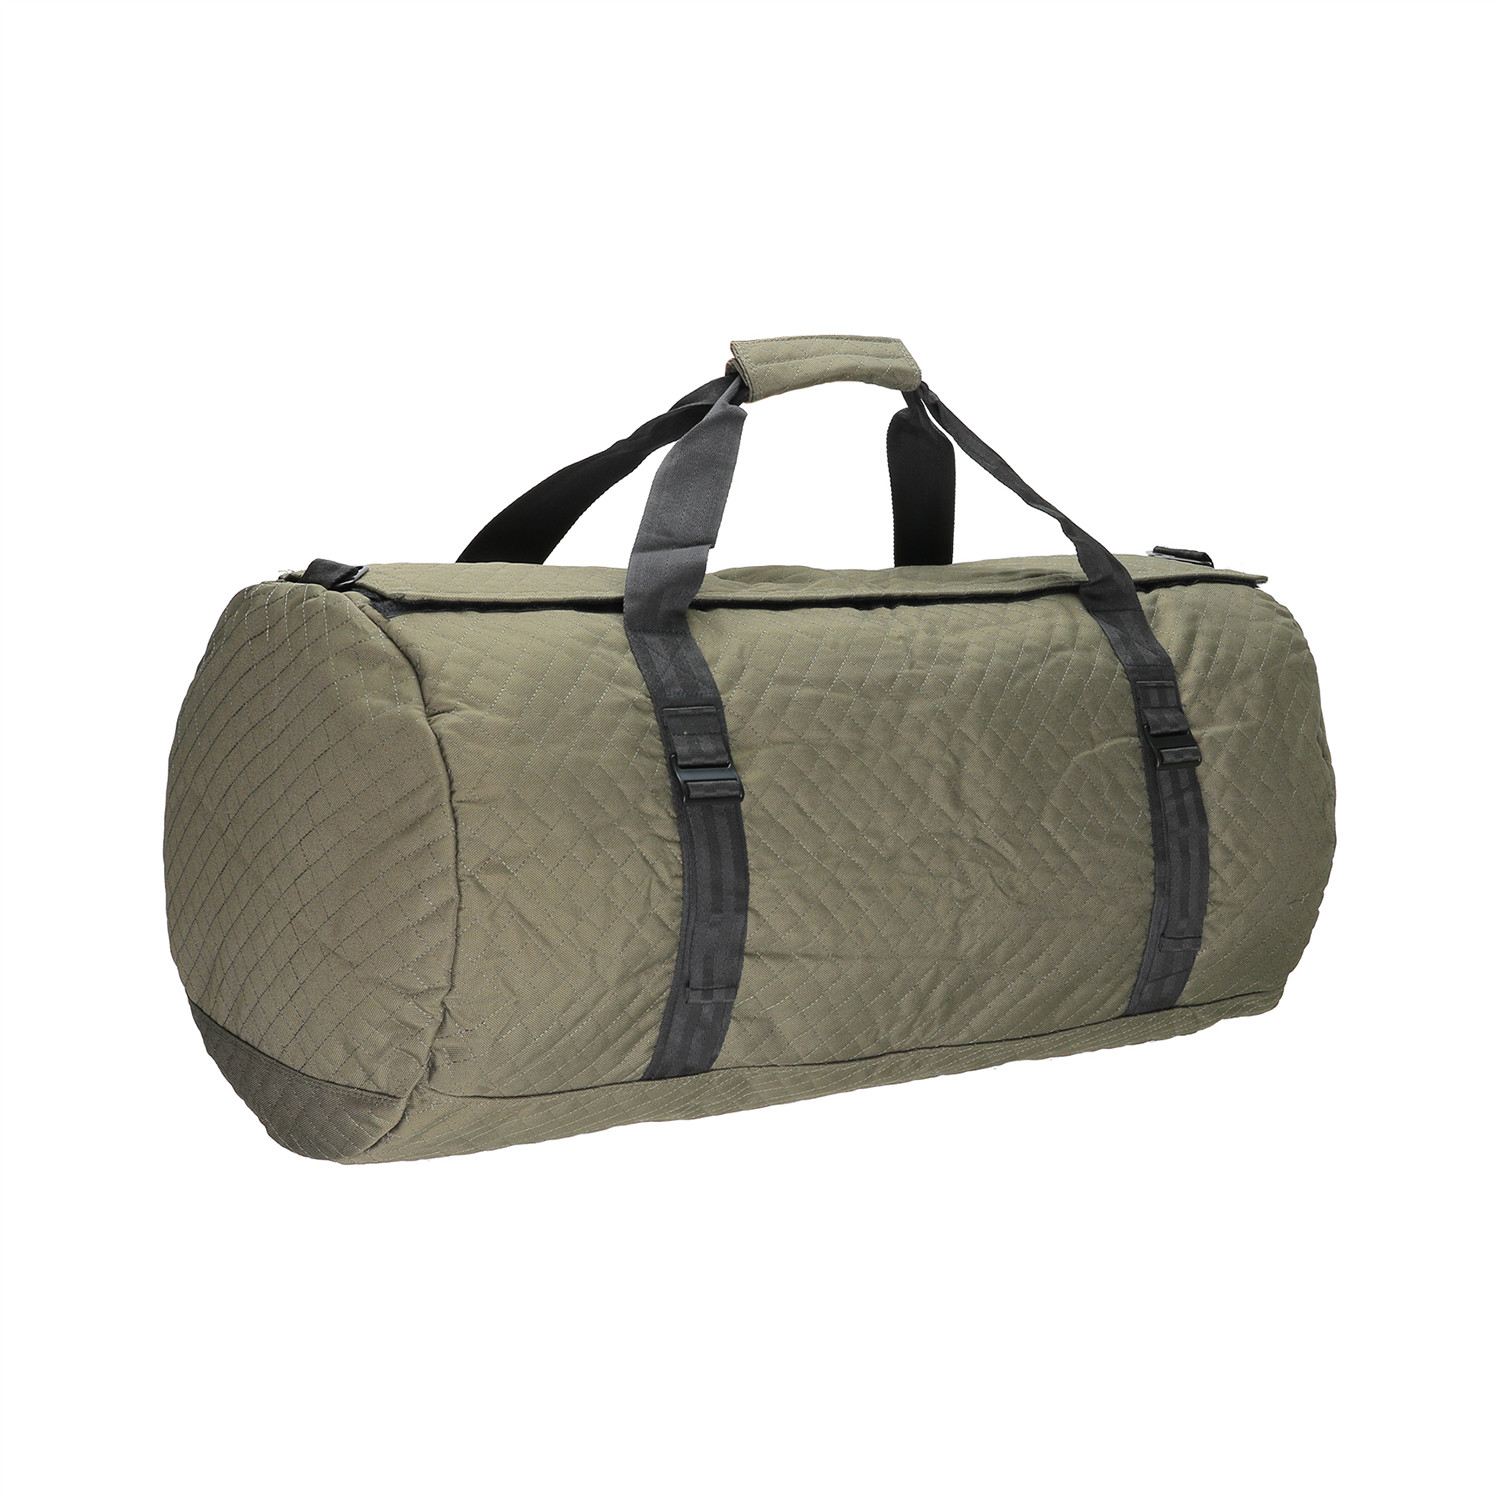 DAILY Quilted Duffle Bag // Green (XL) - AWOL - Touch of Modern : quilted duffle bags - Adamdwight.com